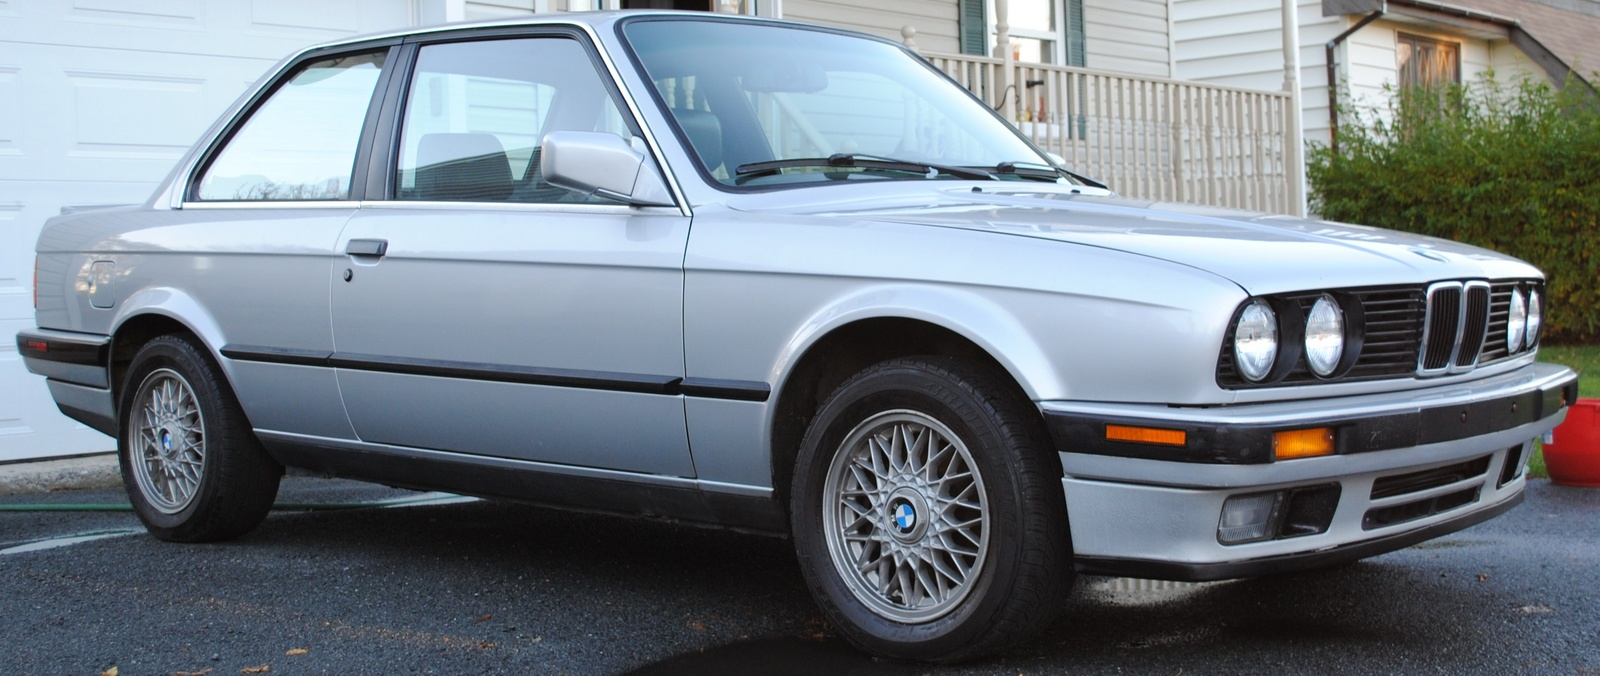 BMW 3 series 325is 1990 photo - 3